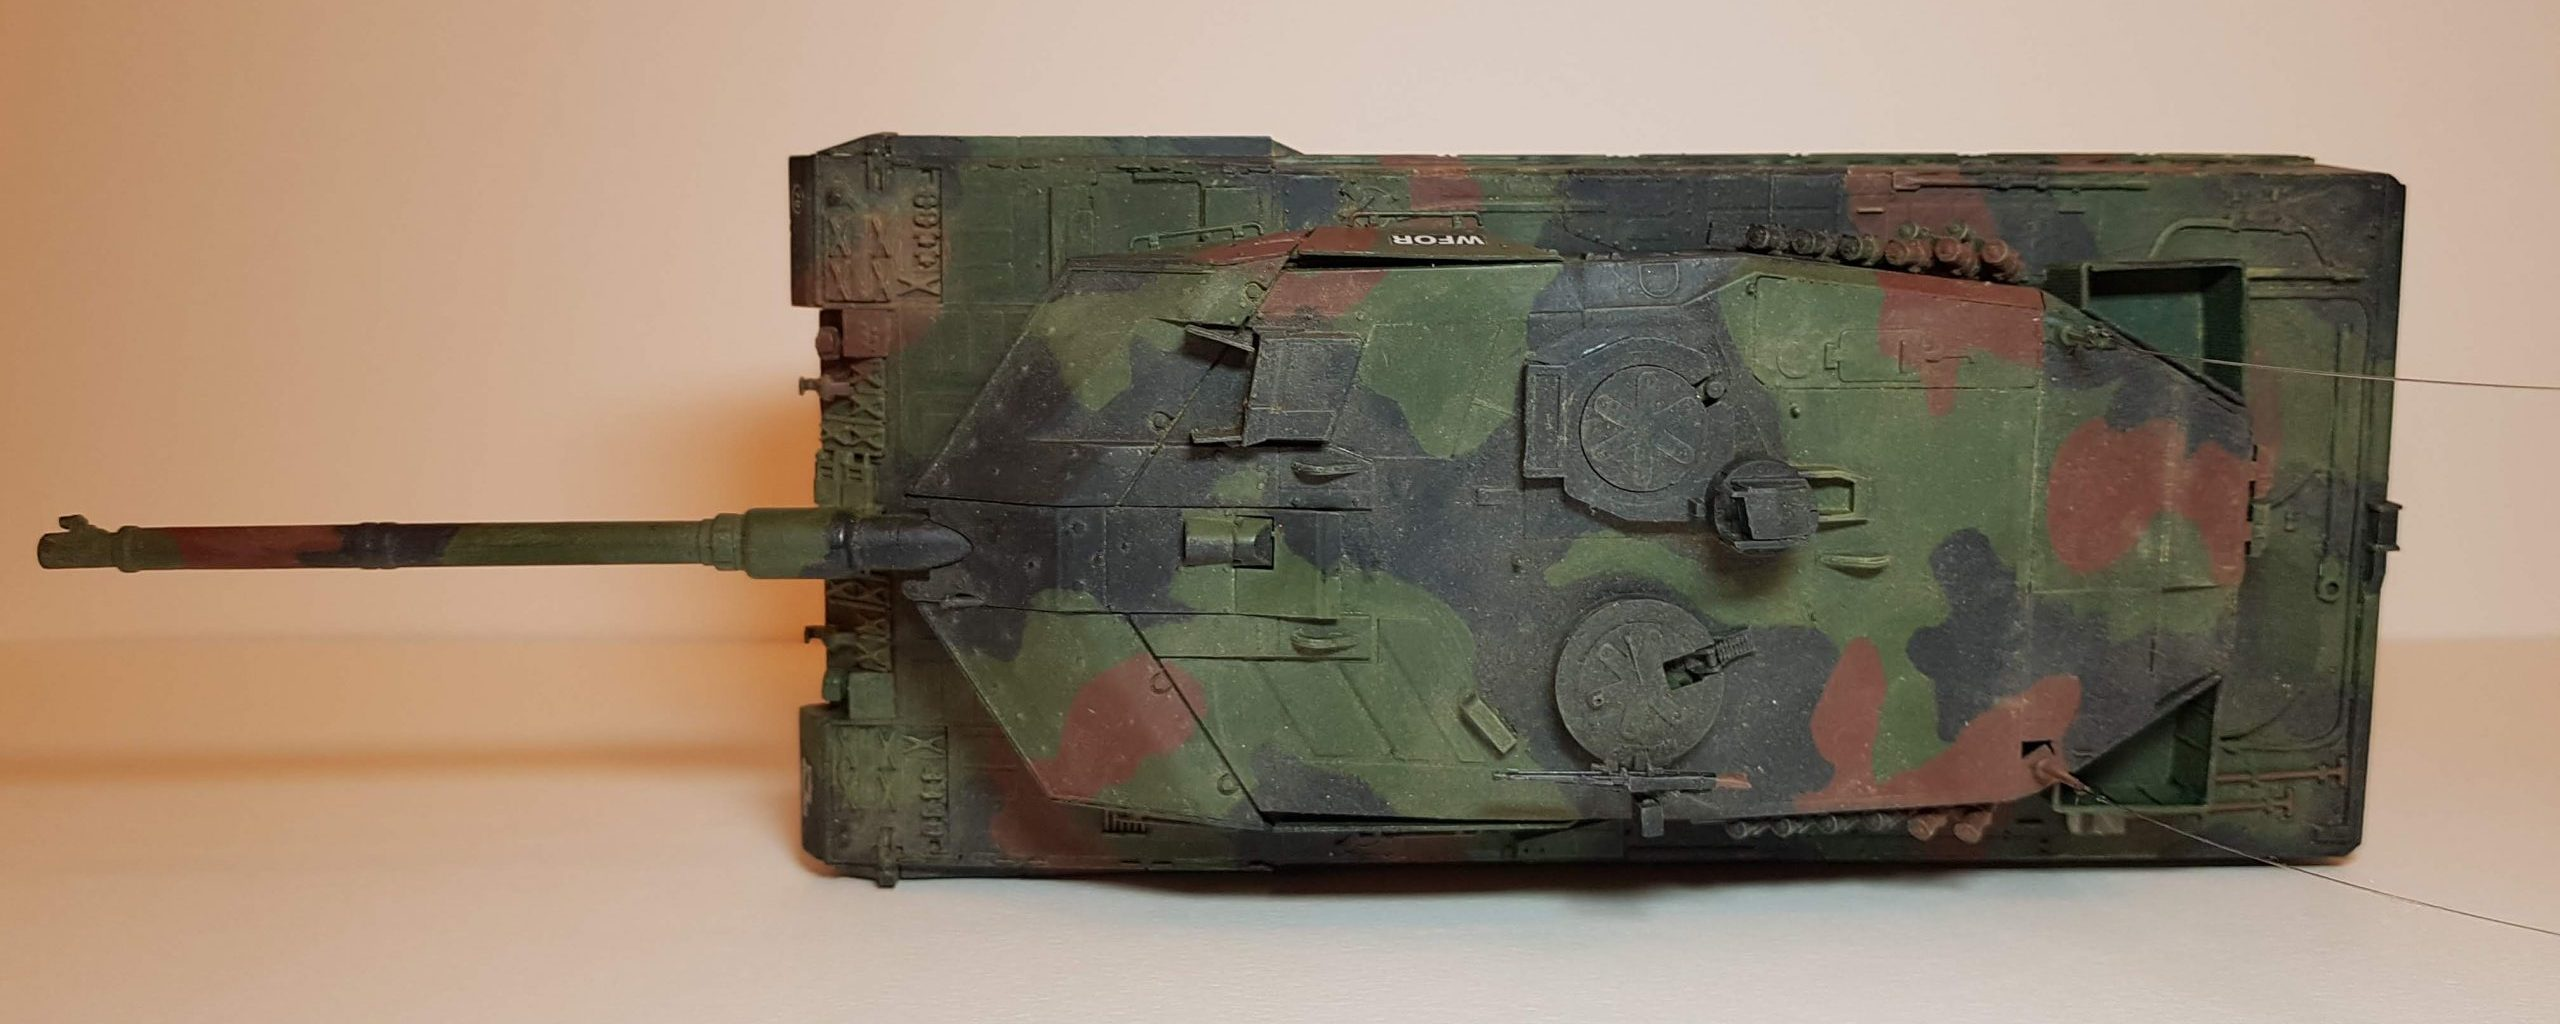 Model of Leopard 2A6M - Top View - 1/35 Scale - Built By Wright Built - Revell Models